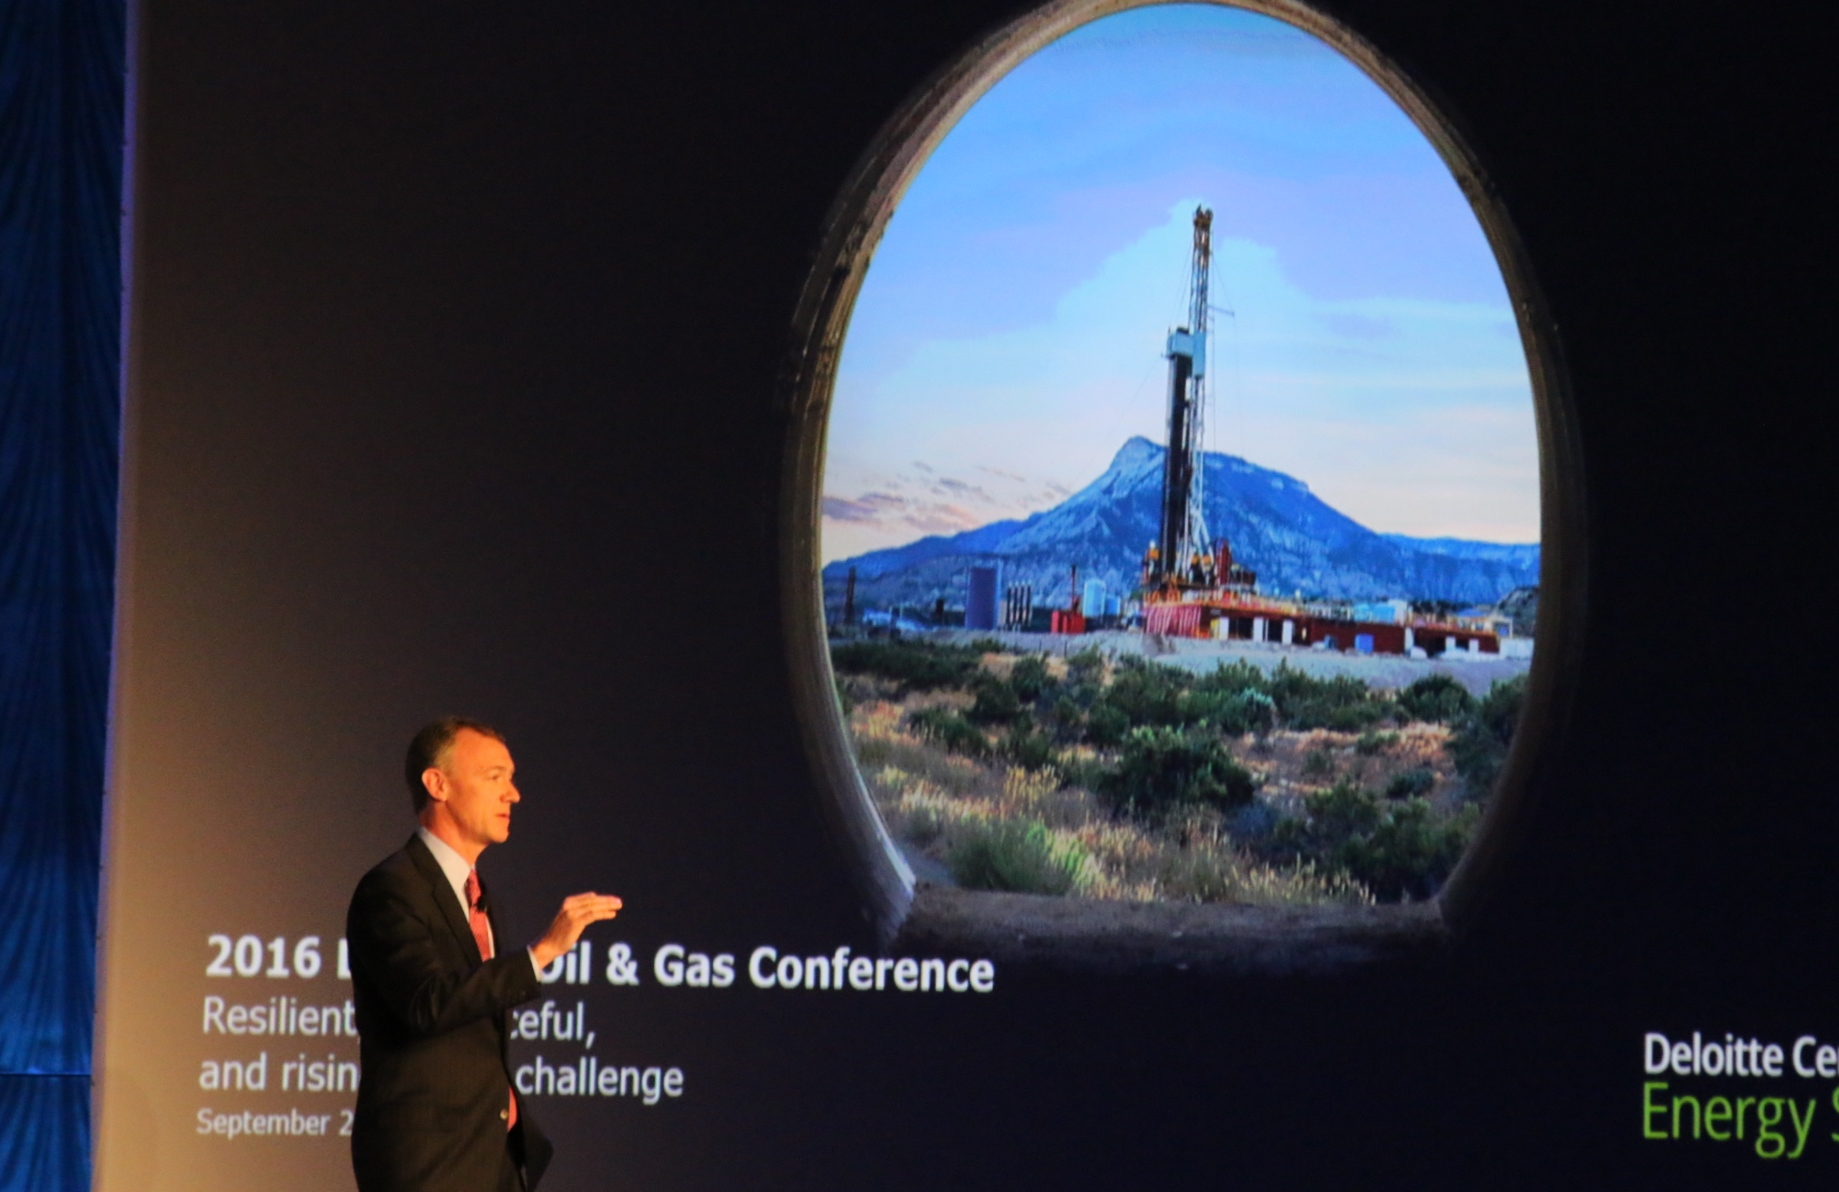 Deloitte's John England at Oil & Gas conference in Houston